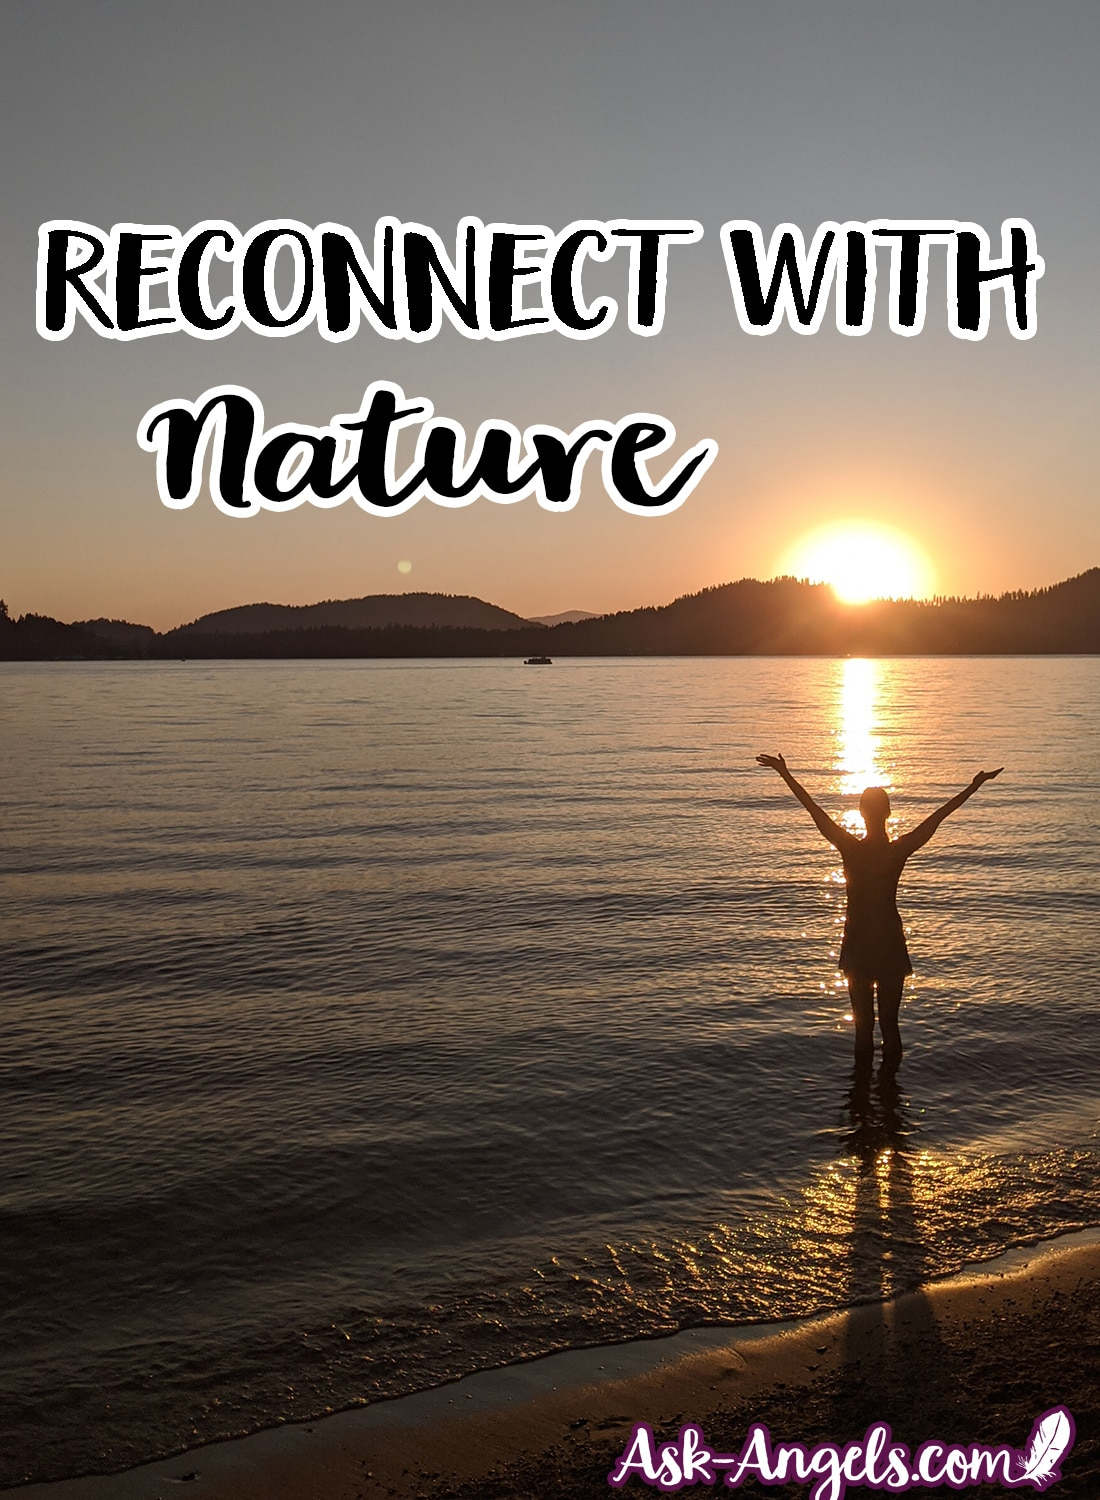 Reconnect with Nature at Lammas/ Lughnasadh